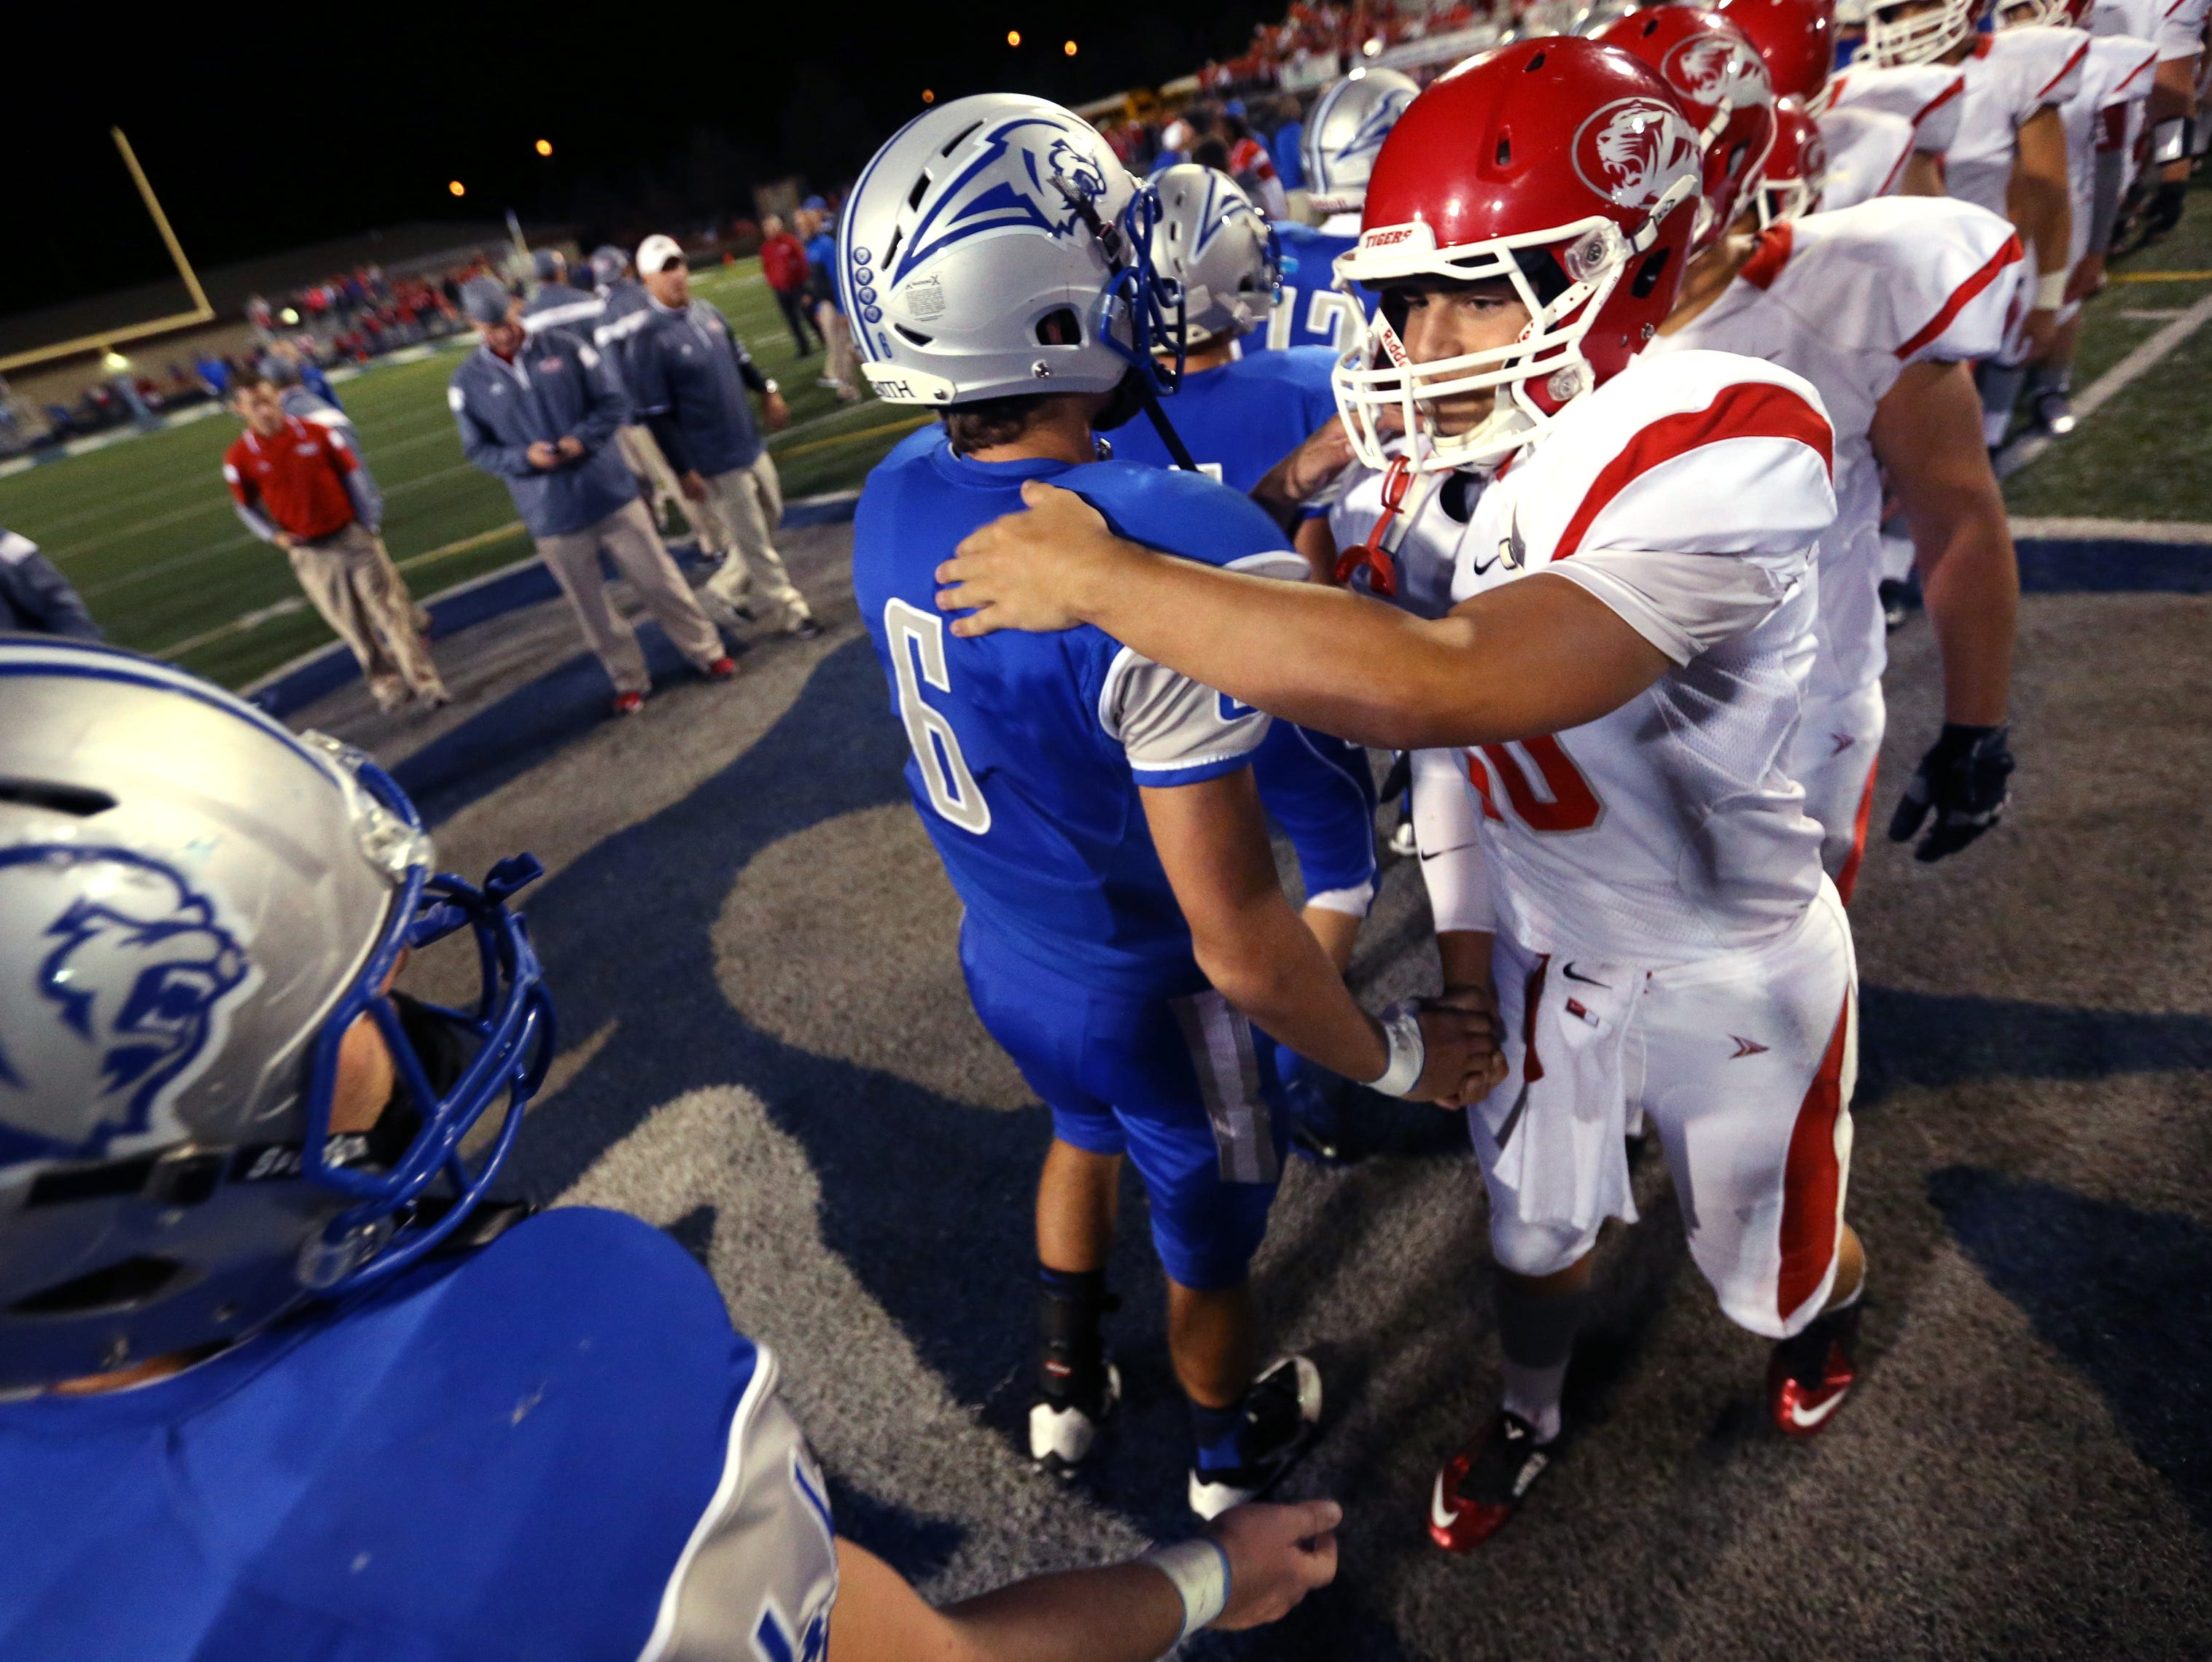 Fishers Tigers quarterback Zach Eaton shakes hands with Hamilton Southeastern's grant Skelton after the Tigers' 41-10 win over the Royals at HSE on Friday, September 12, 2014.